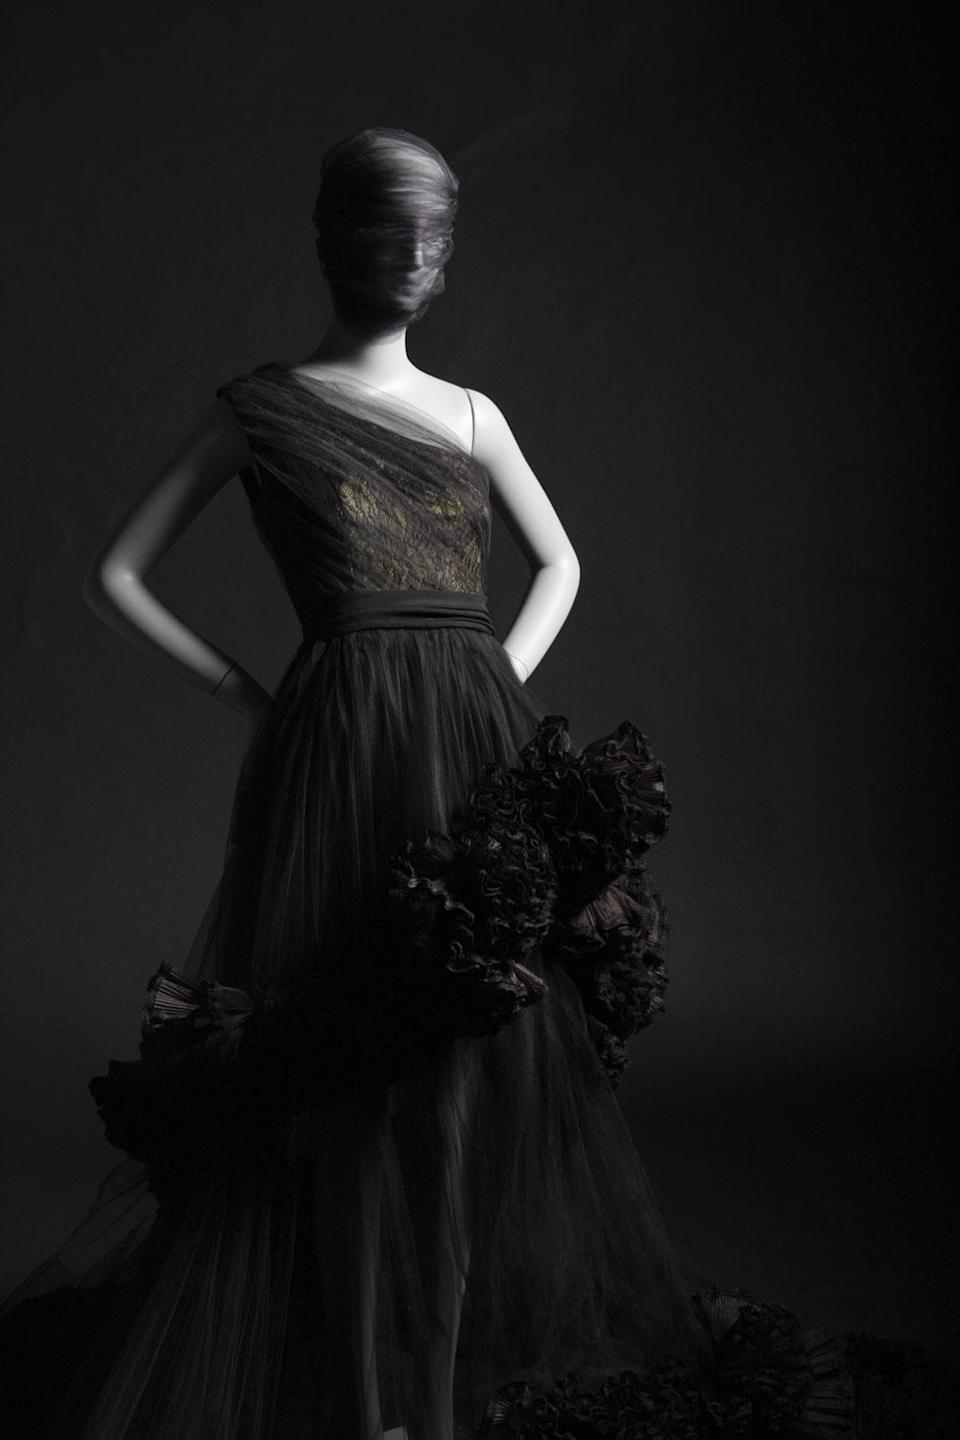 One of Siriano's creations featured in the book. (Photo: Brad Walsh, <em>Dresses to Dream About</em>, by Christian Siriano, Rizzoli New York)